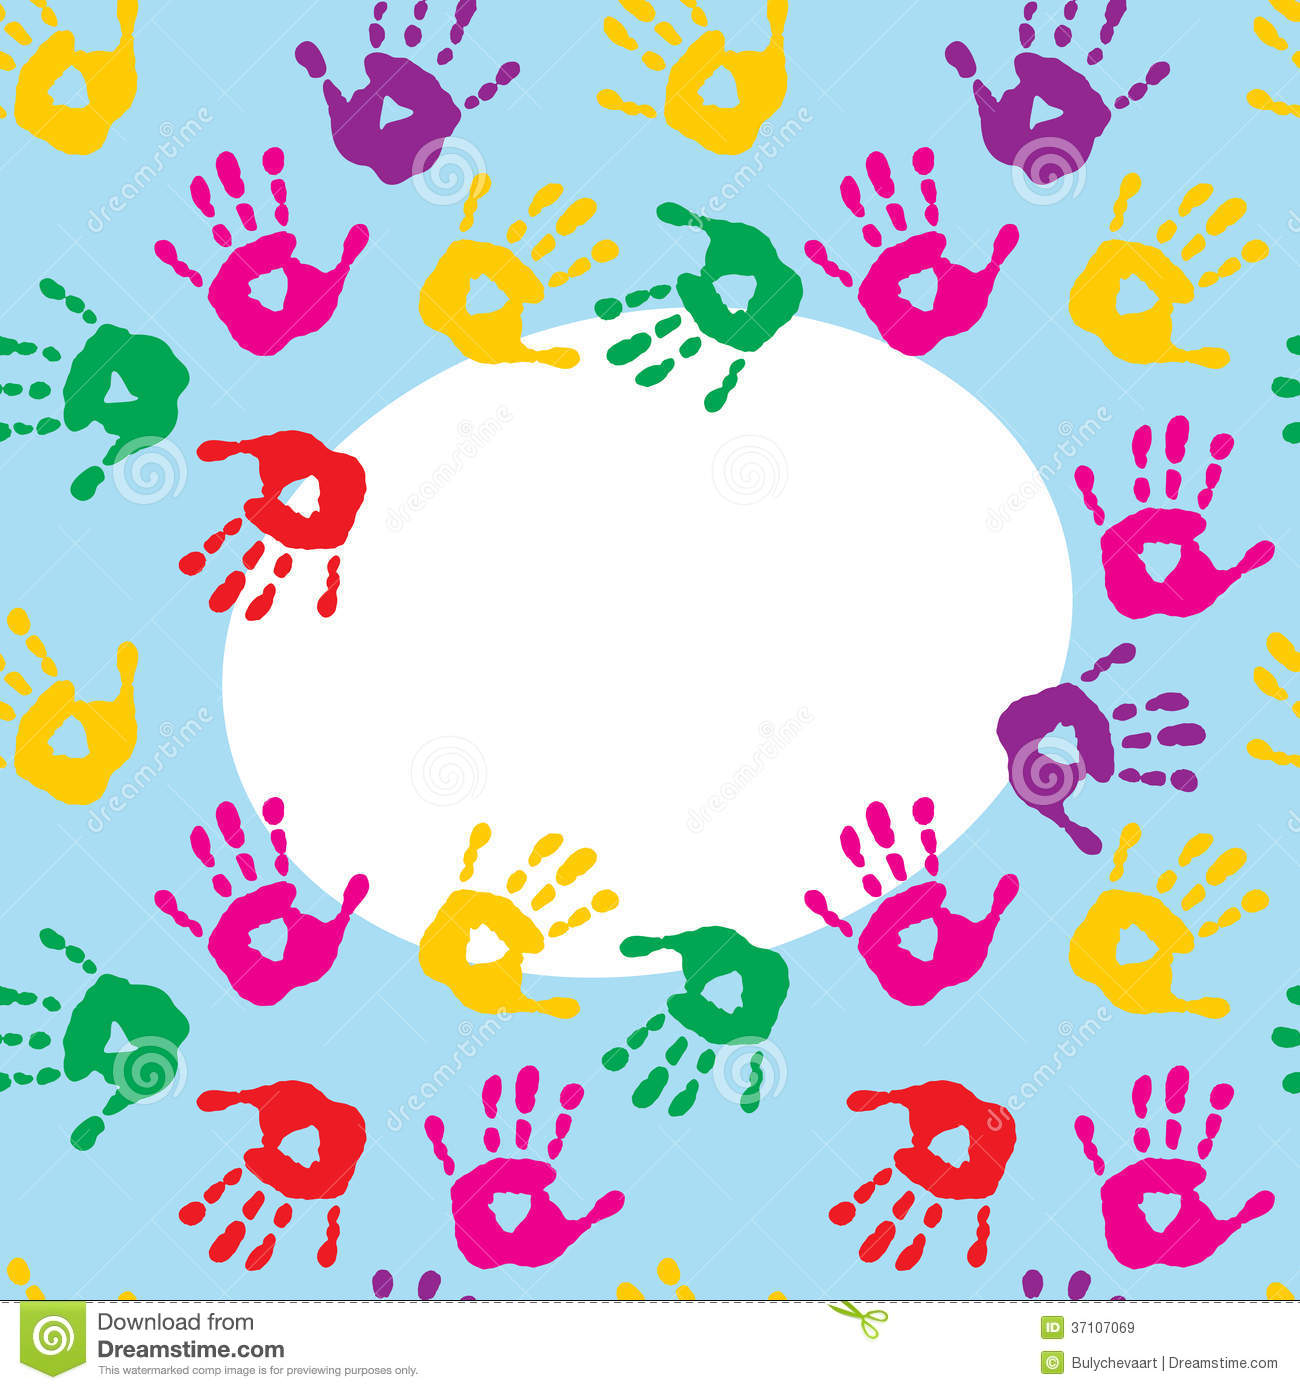 Frame with colorful prints of childrens hands